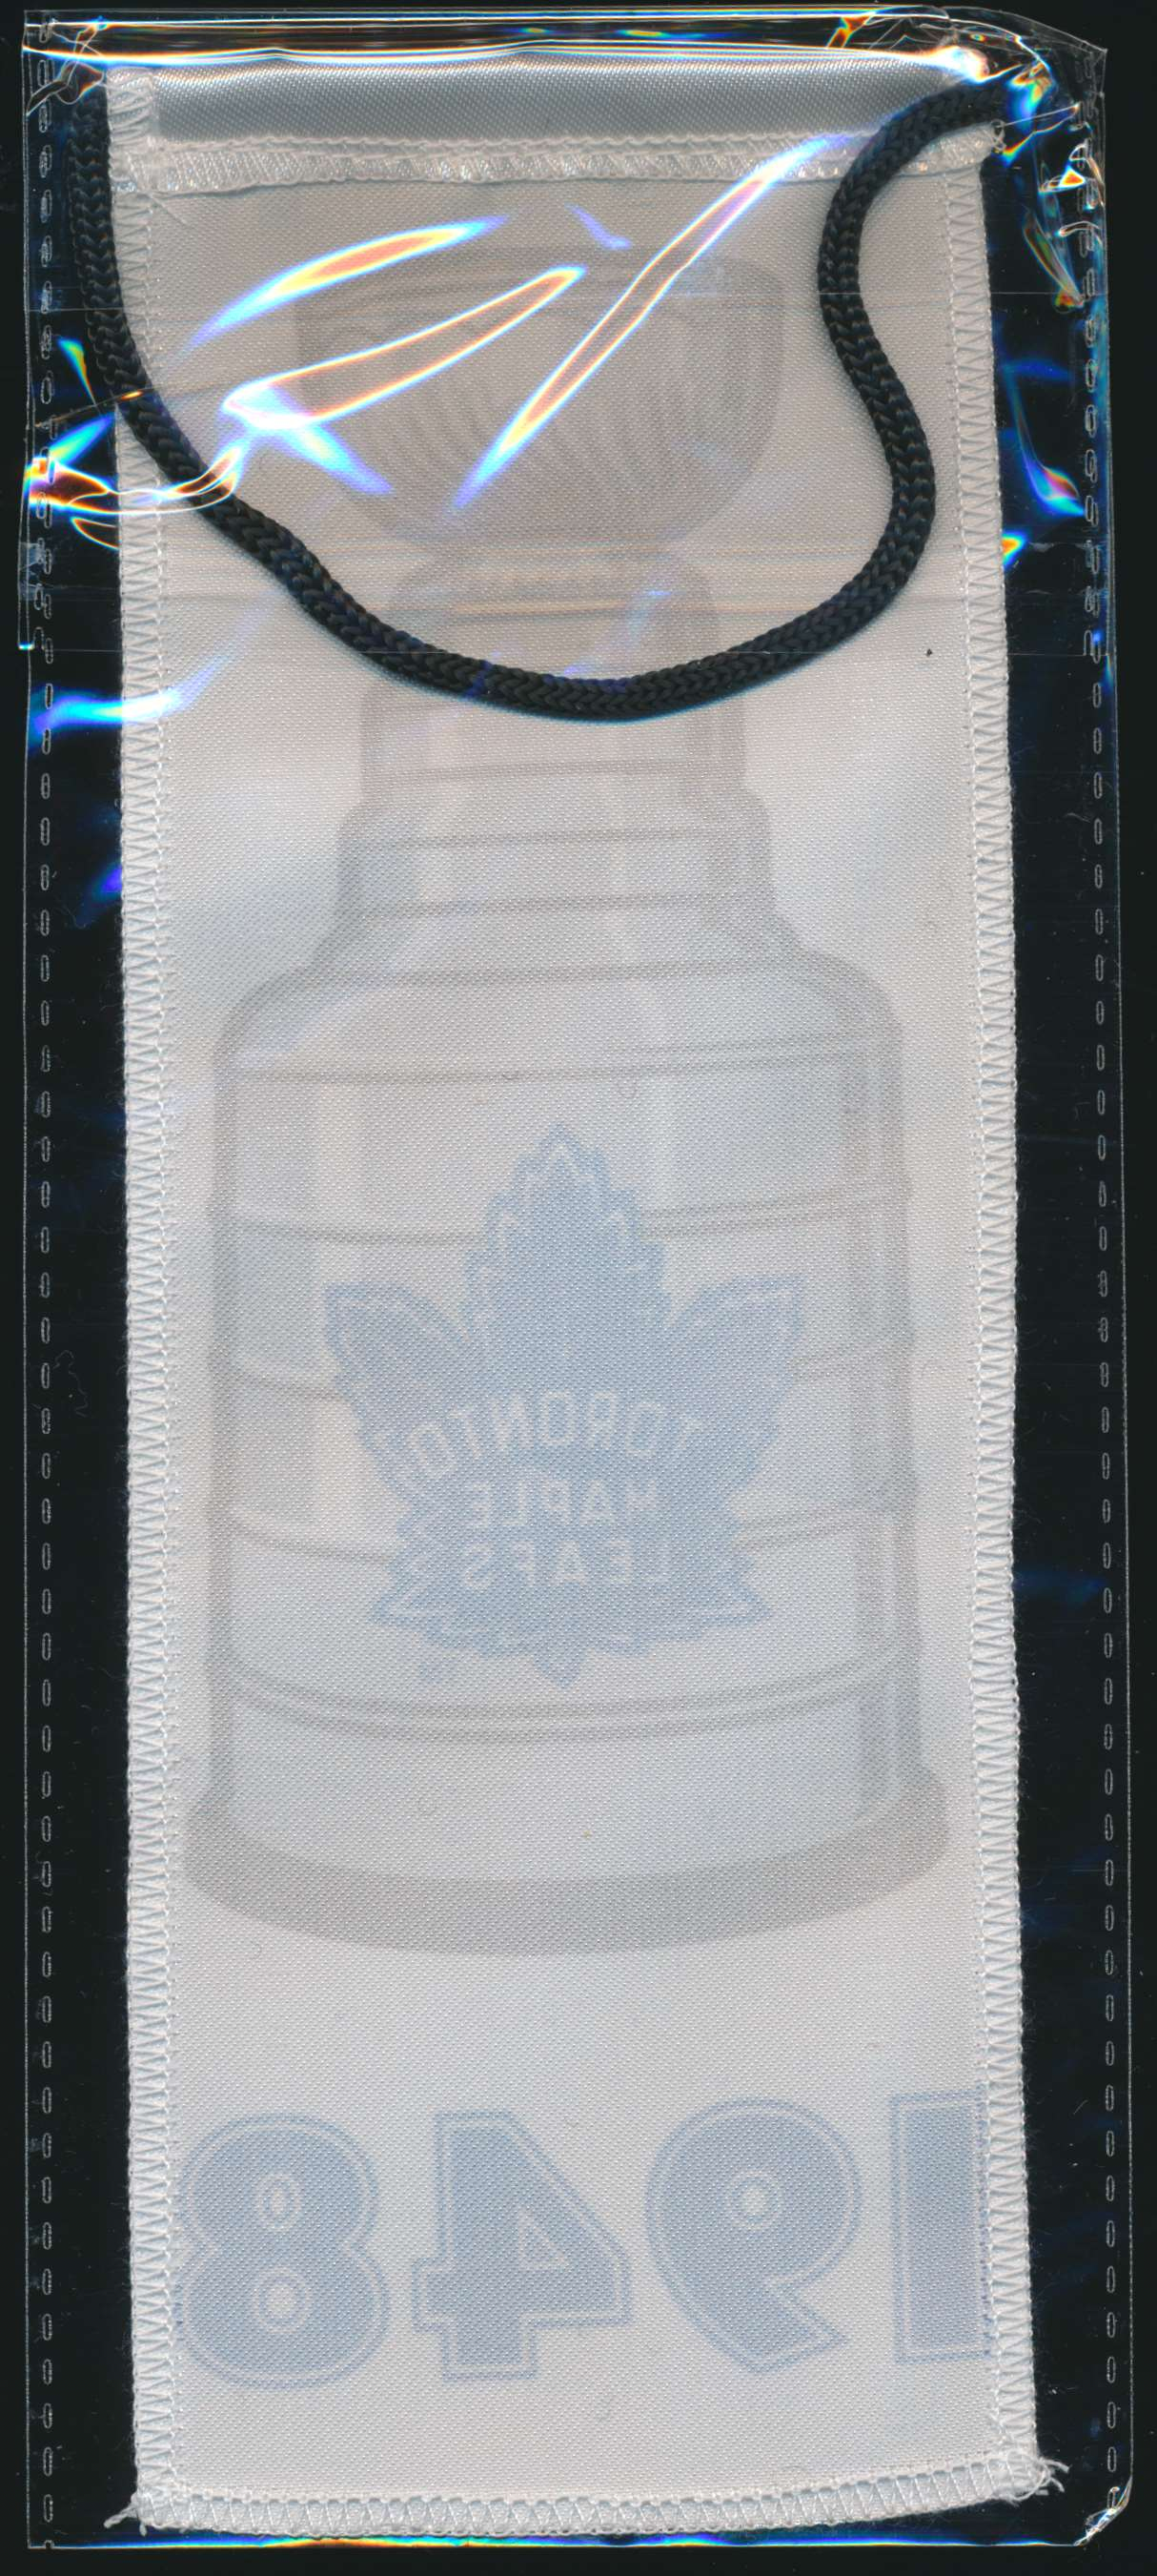 2017-18 Maple Leafs Centennial Banners 1948 Stanley Cup Banner card back image